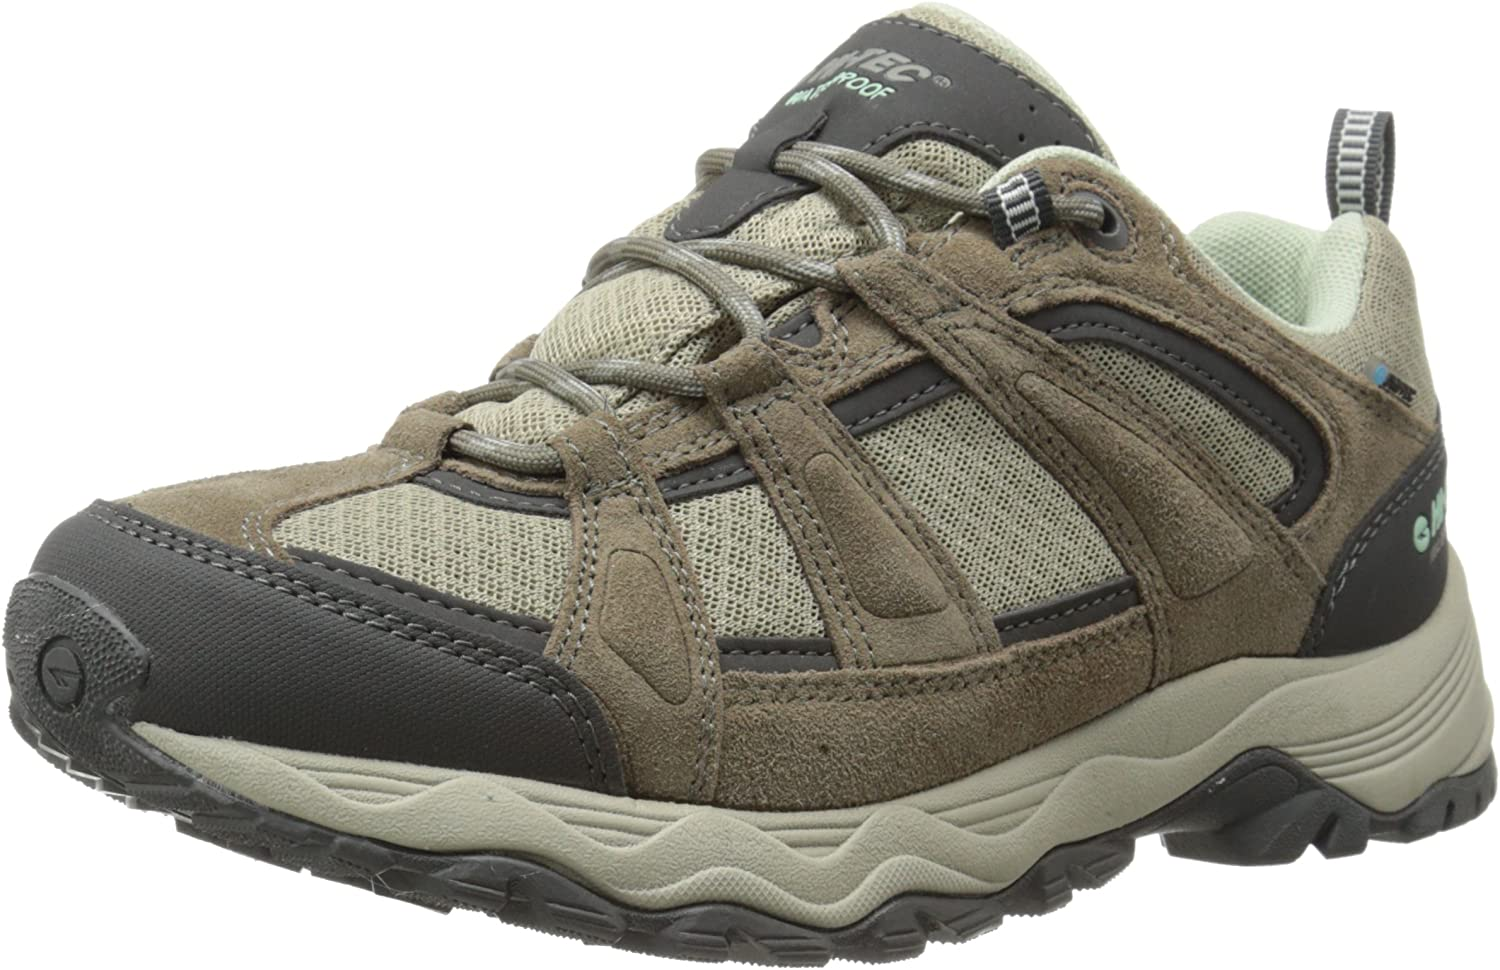 Hi-Tec Women's Perpetua Low Waterproof Hiking shoes